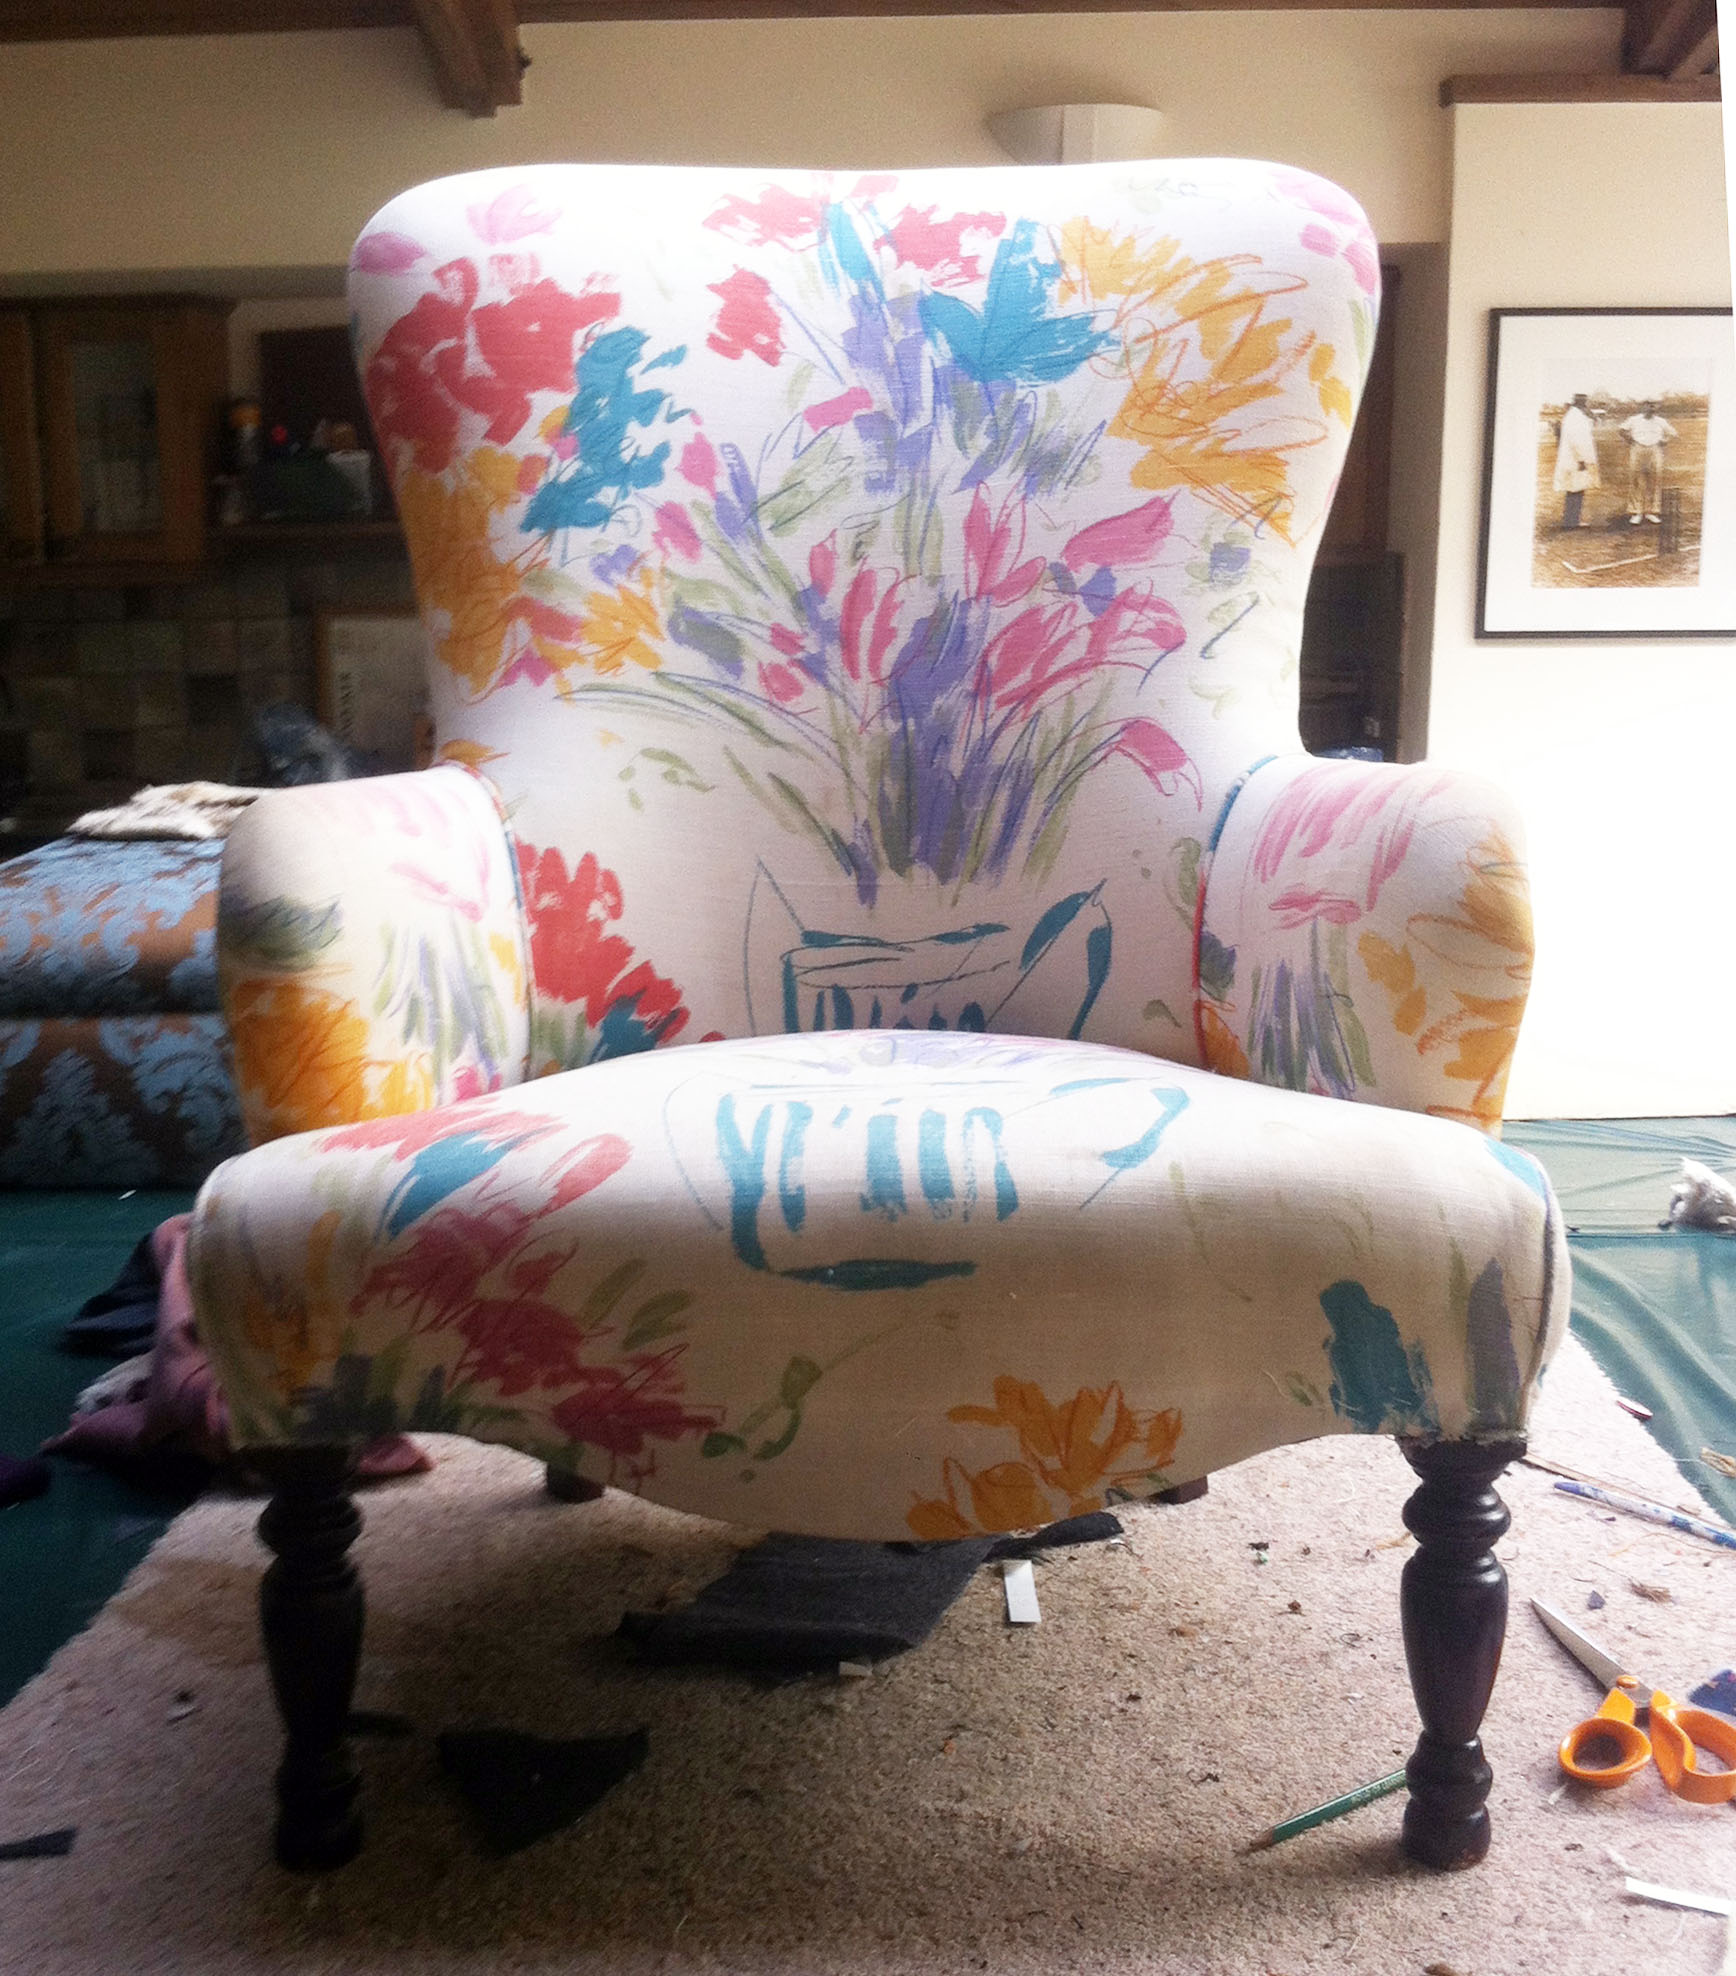 The stuffing in Mary's chair was in good condition so justneeded a recover to modernise it